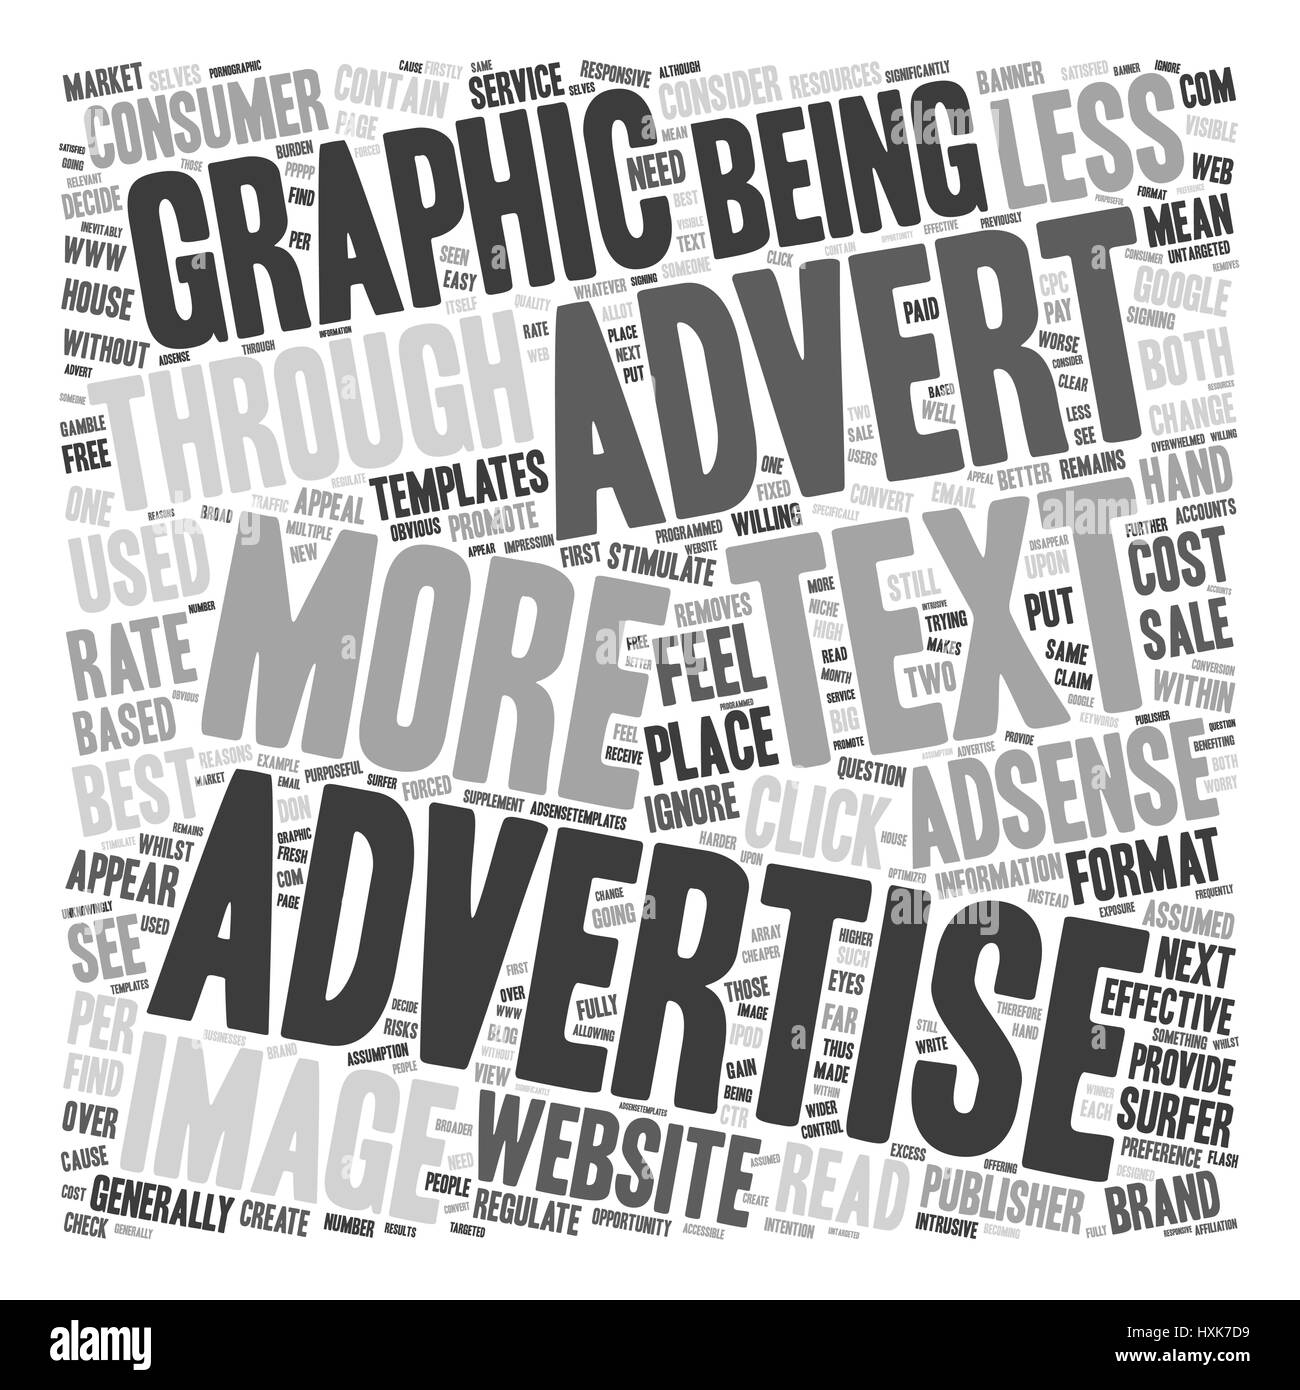 Text v Graphic on Adsense text background wordcloud concept - Stock Image